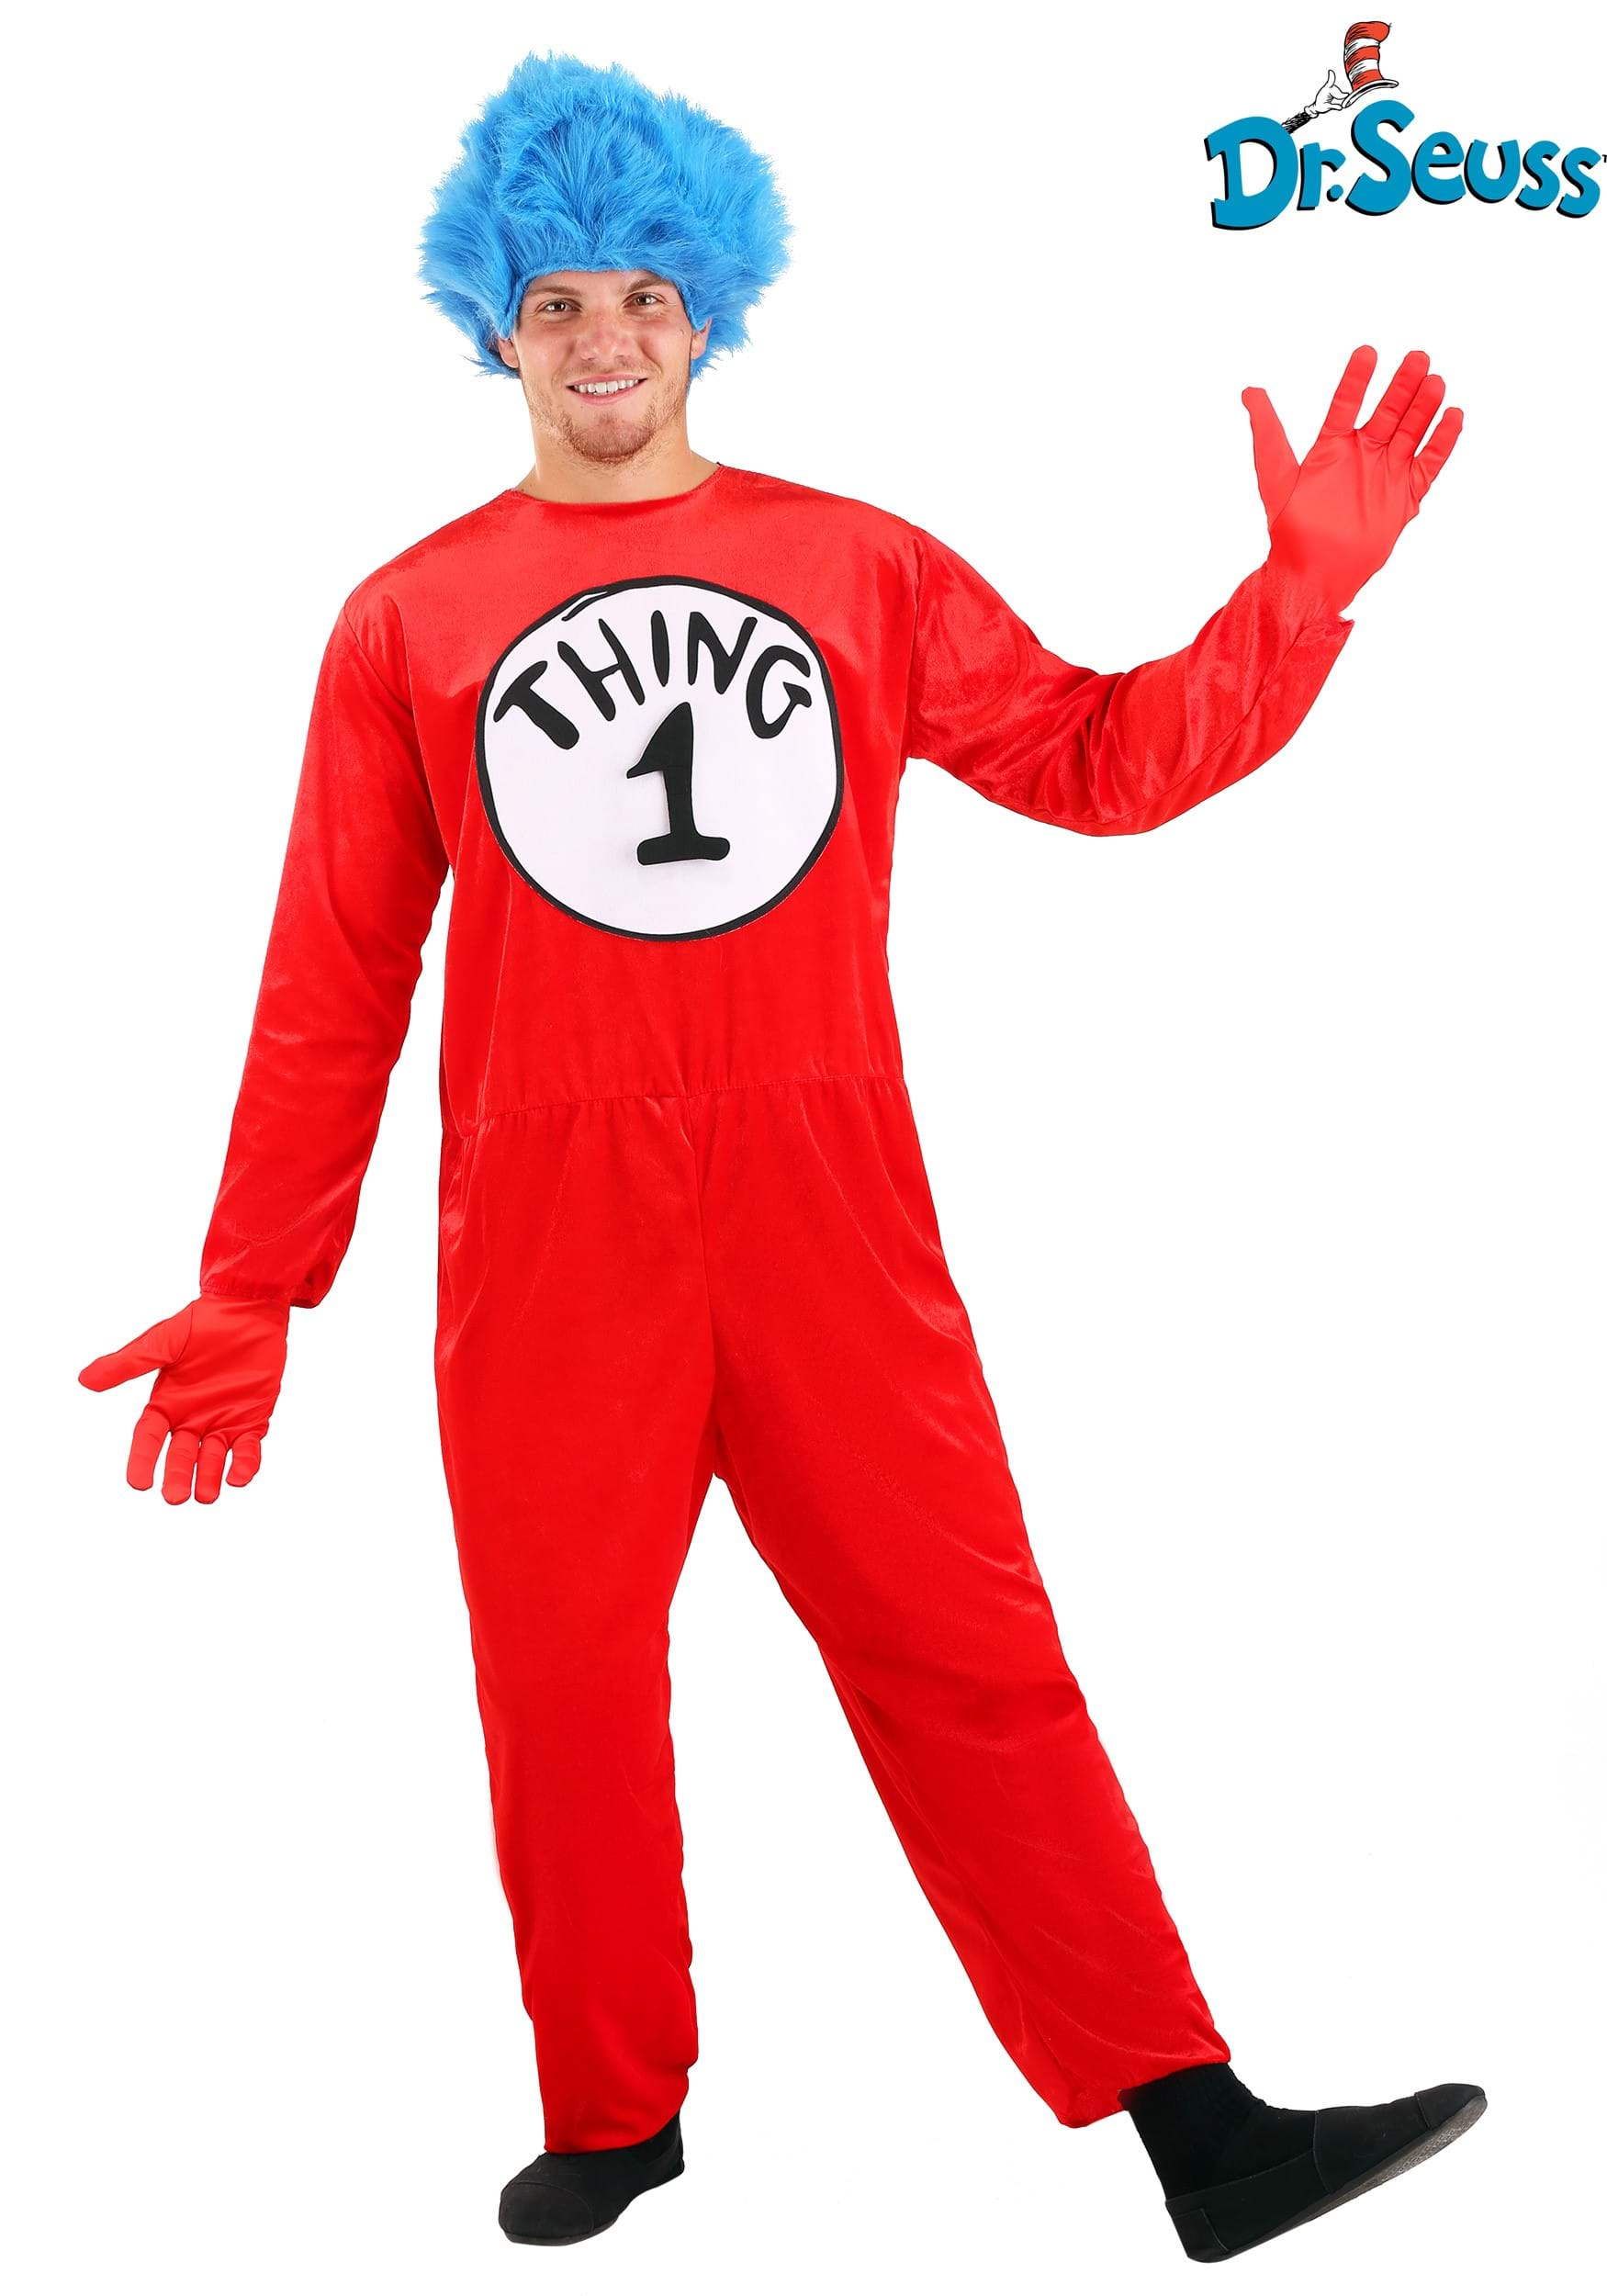 thing 1 thing 2 adult costume - Thing 1 Thing 2 Halloween Costume